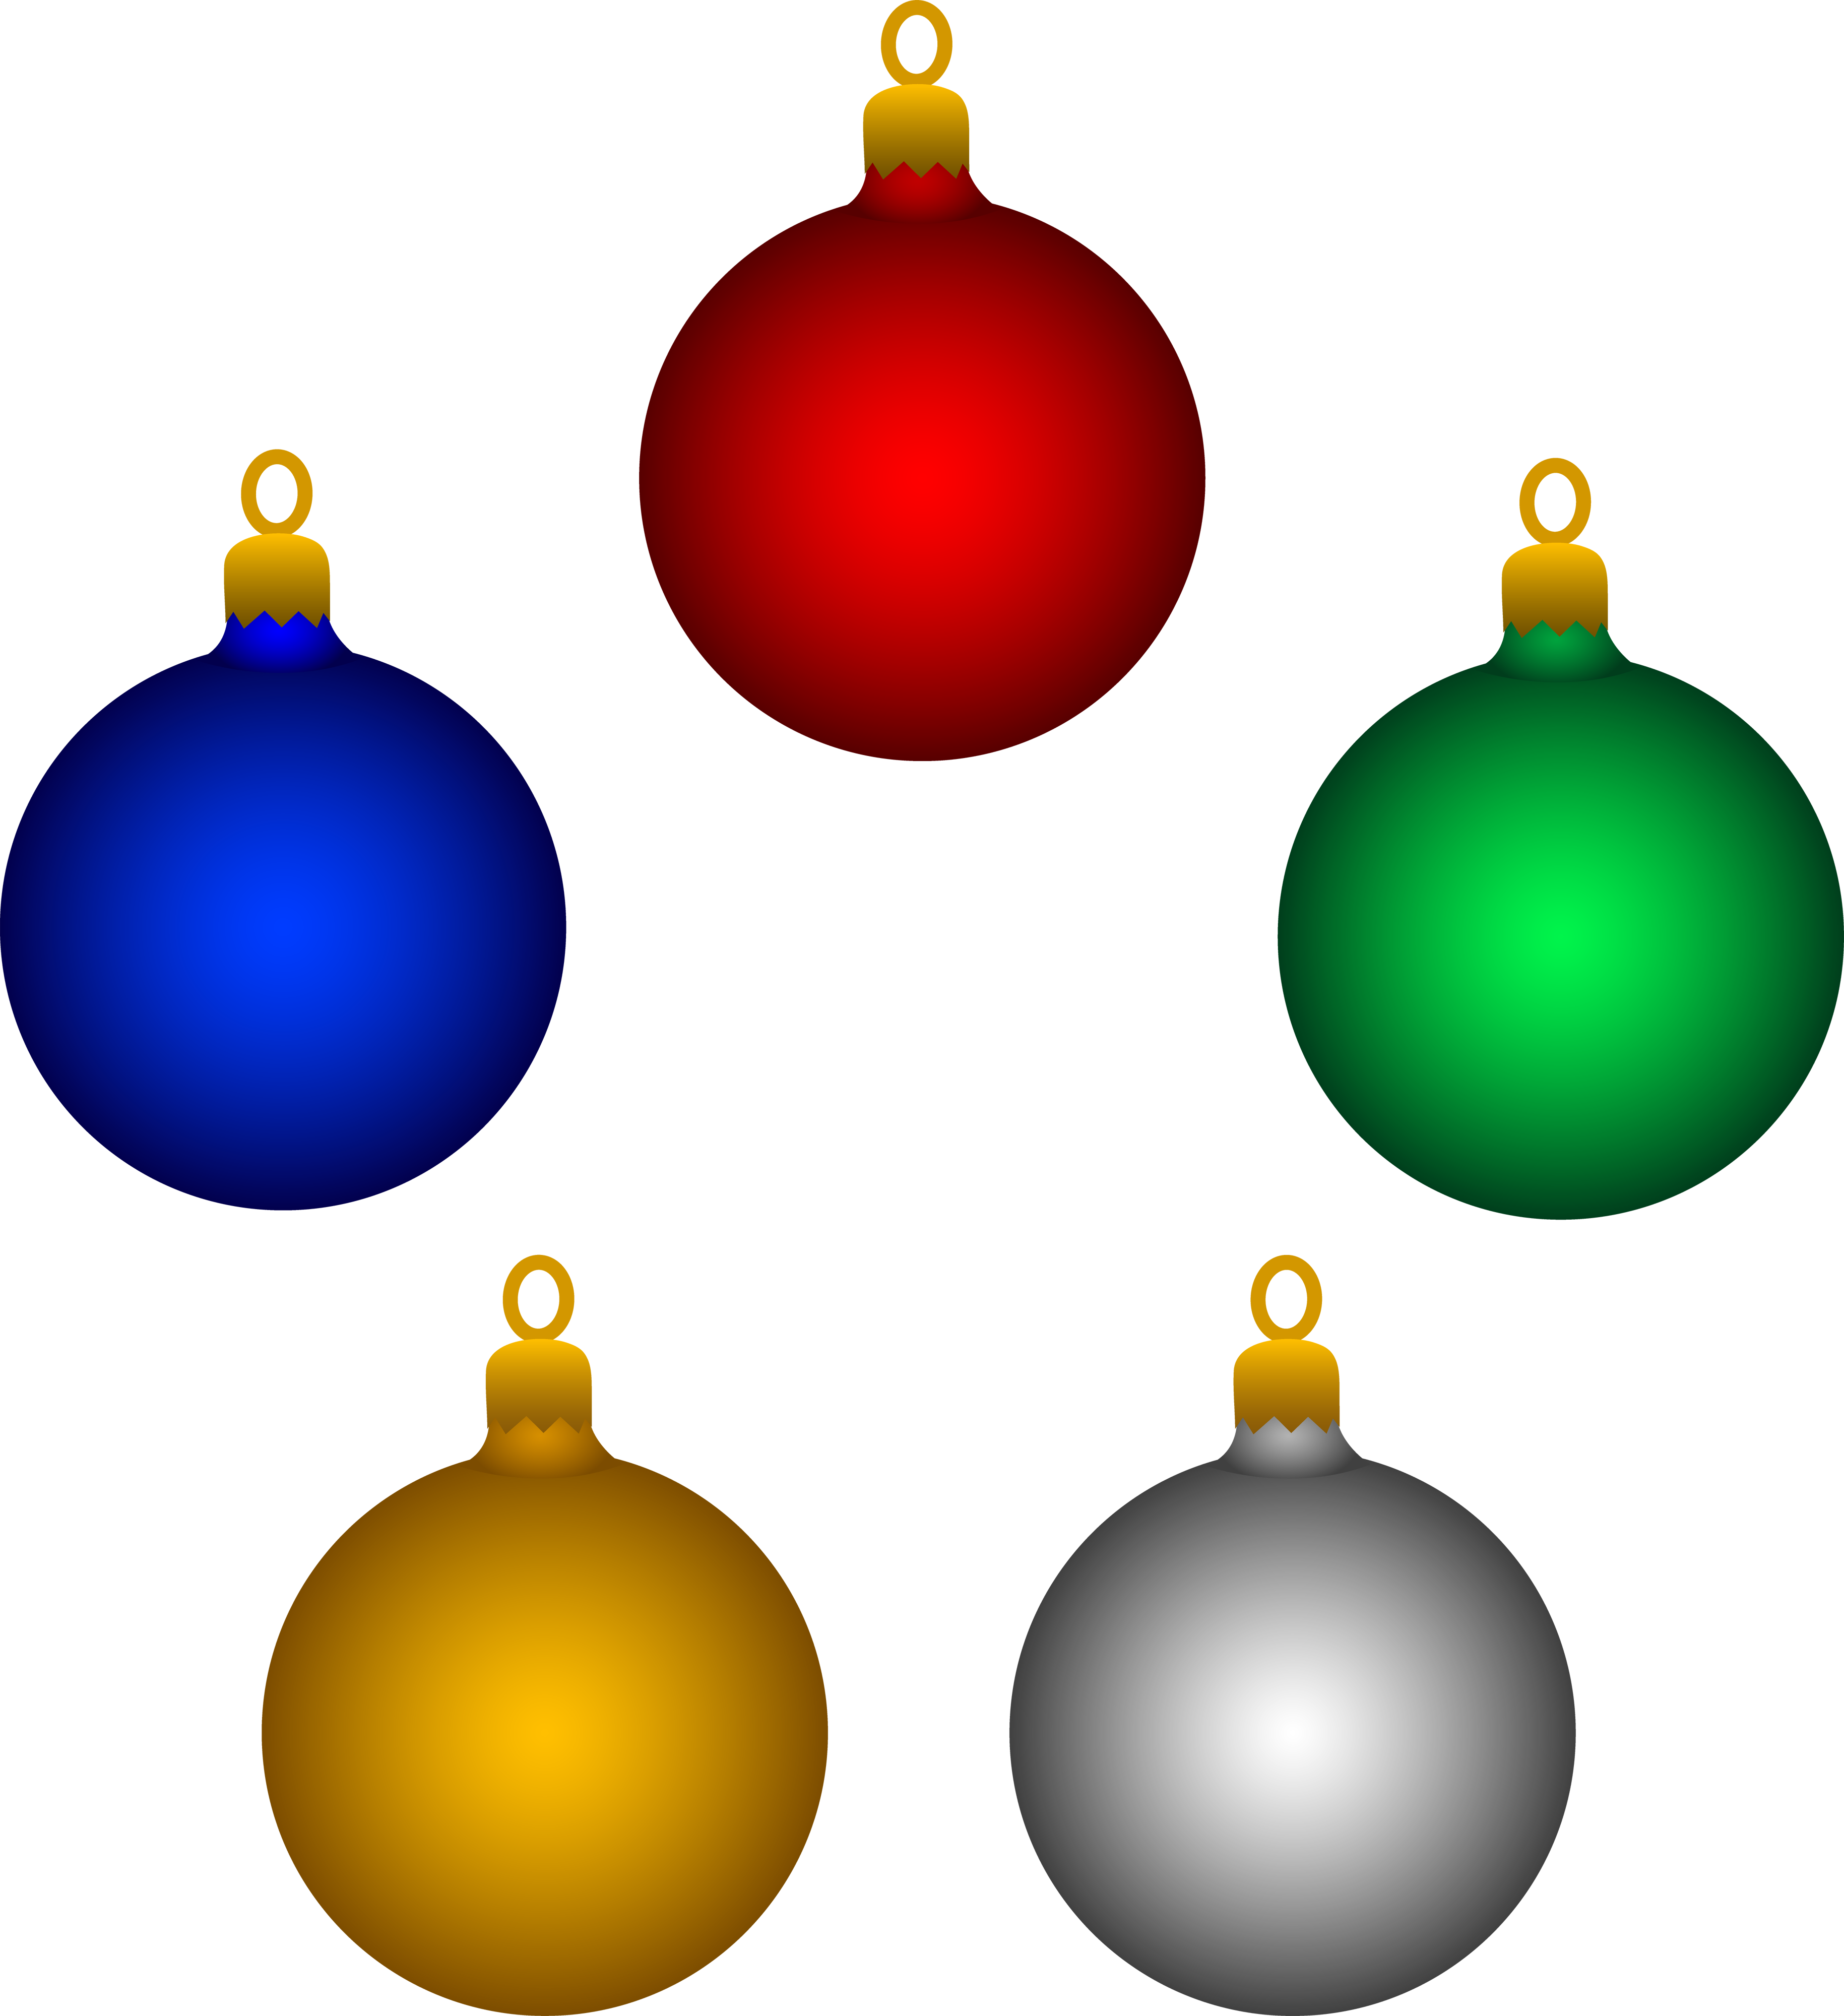 Christmas ornaments png blue and gray. Clipart decorations panda free